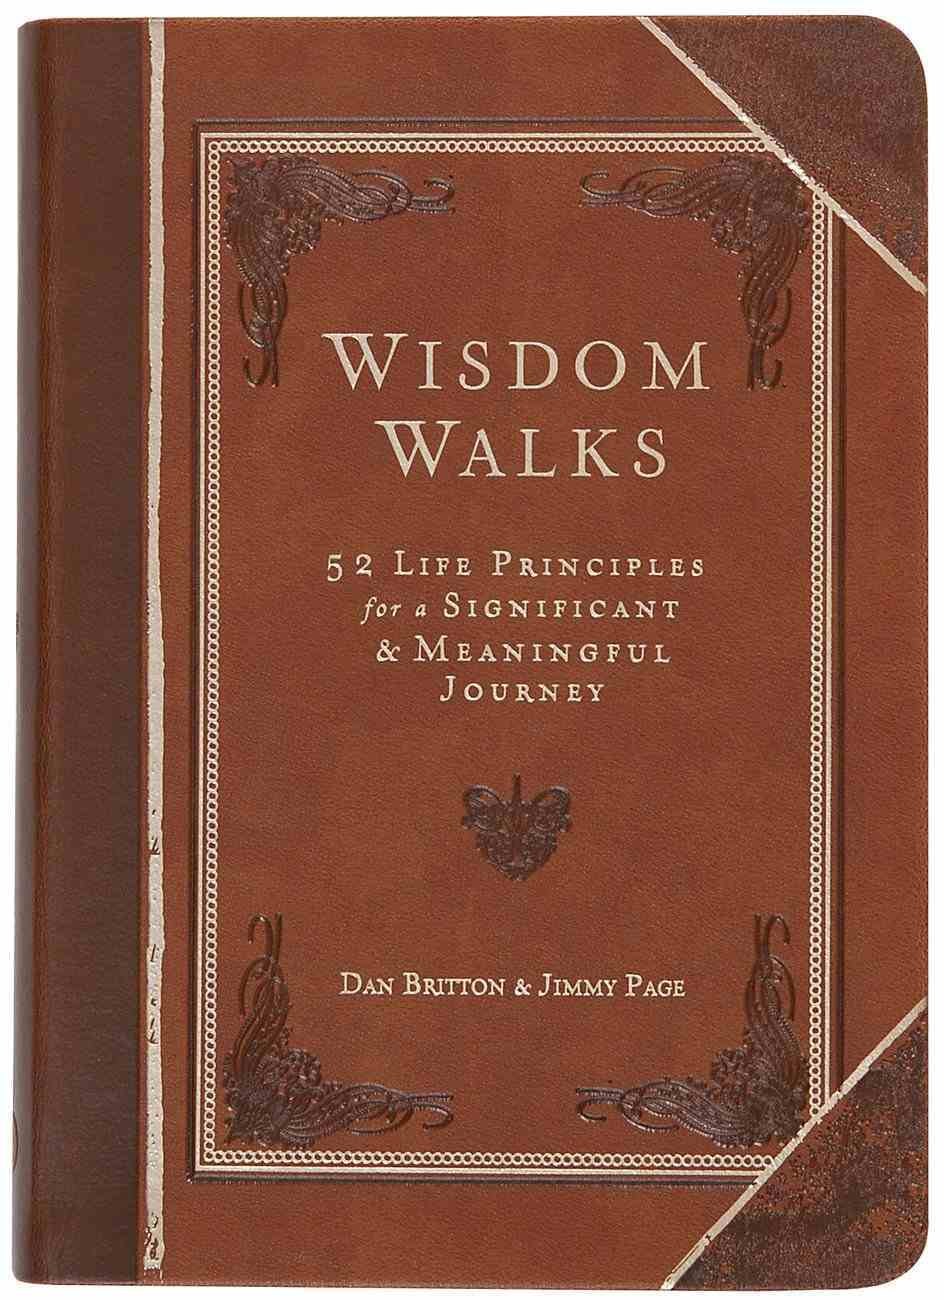 Wisdomwalks: 40 Life Principles For a Significant and Meaningful Journey Imitation Leather